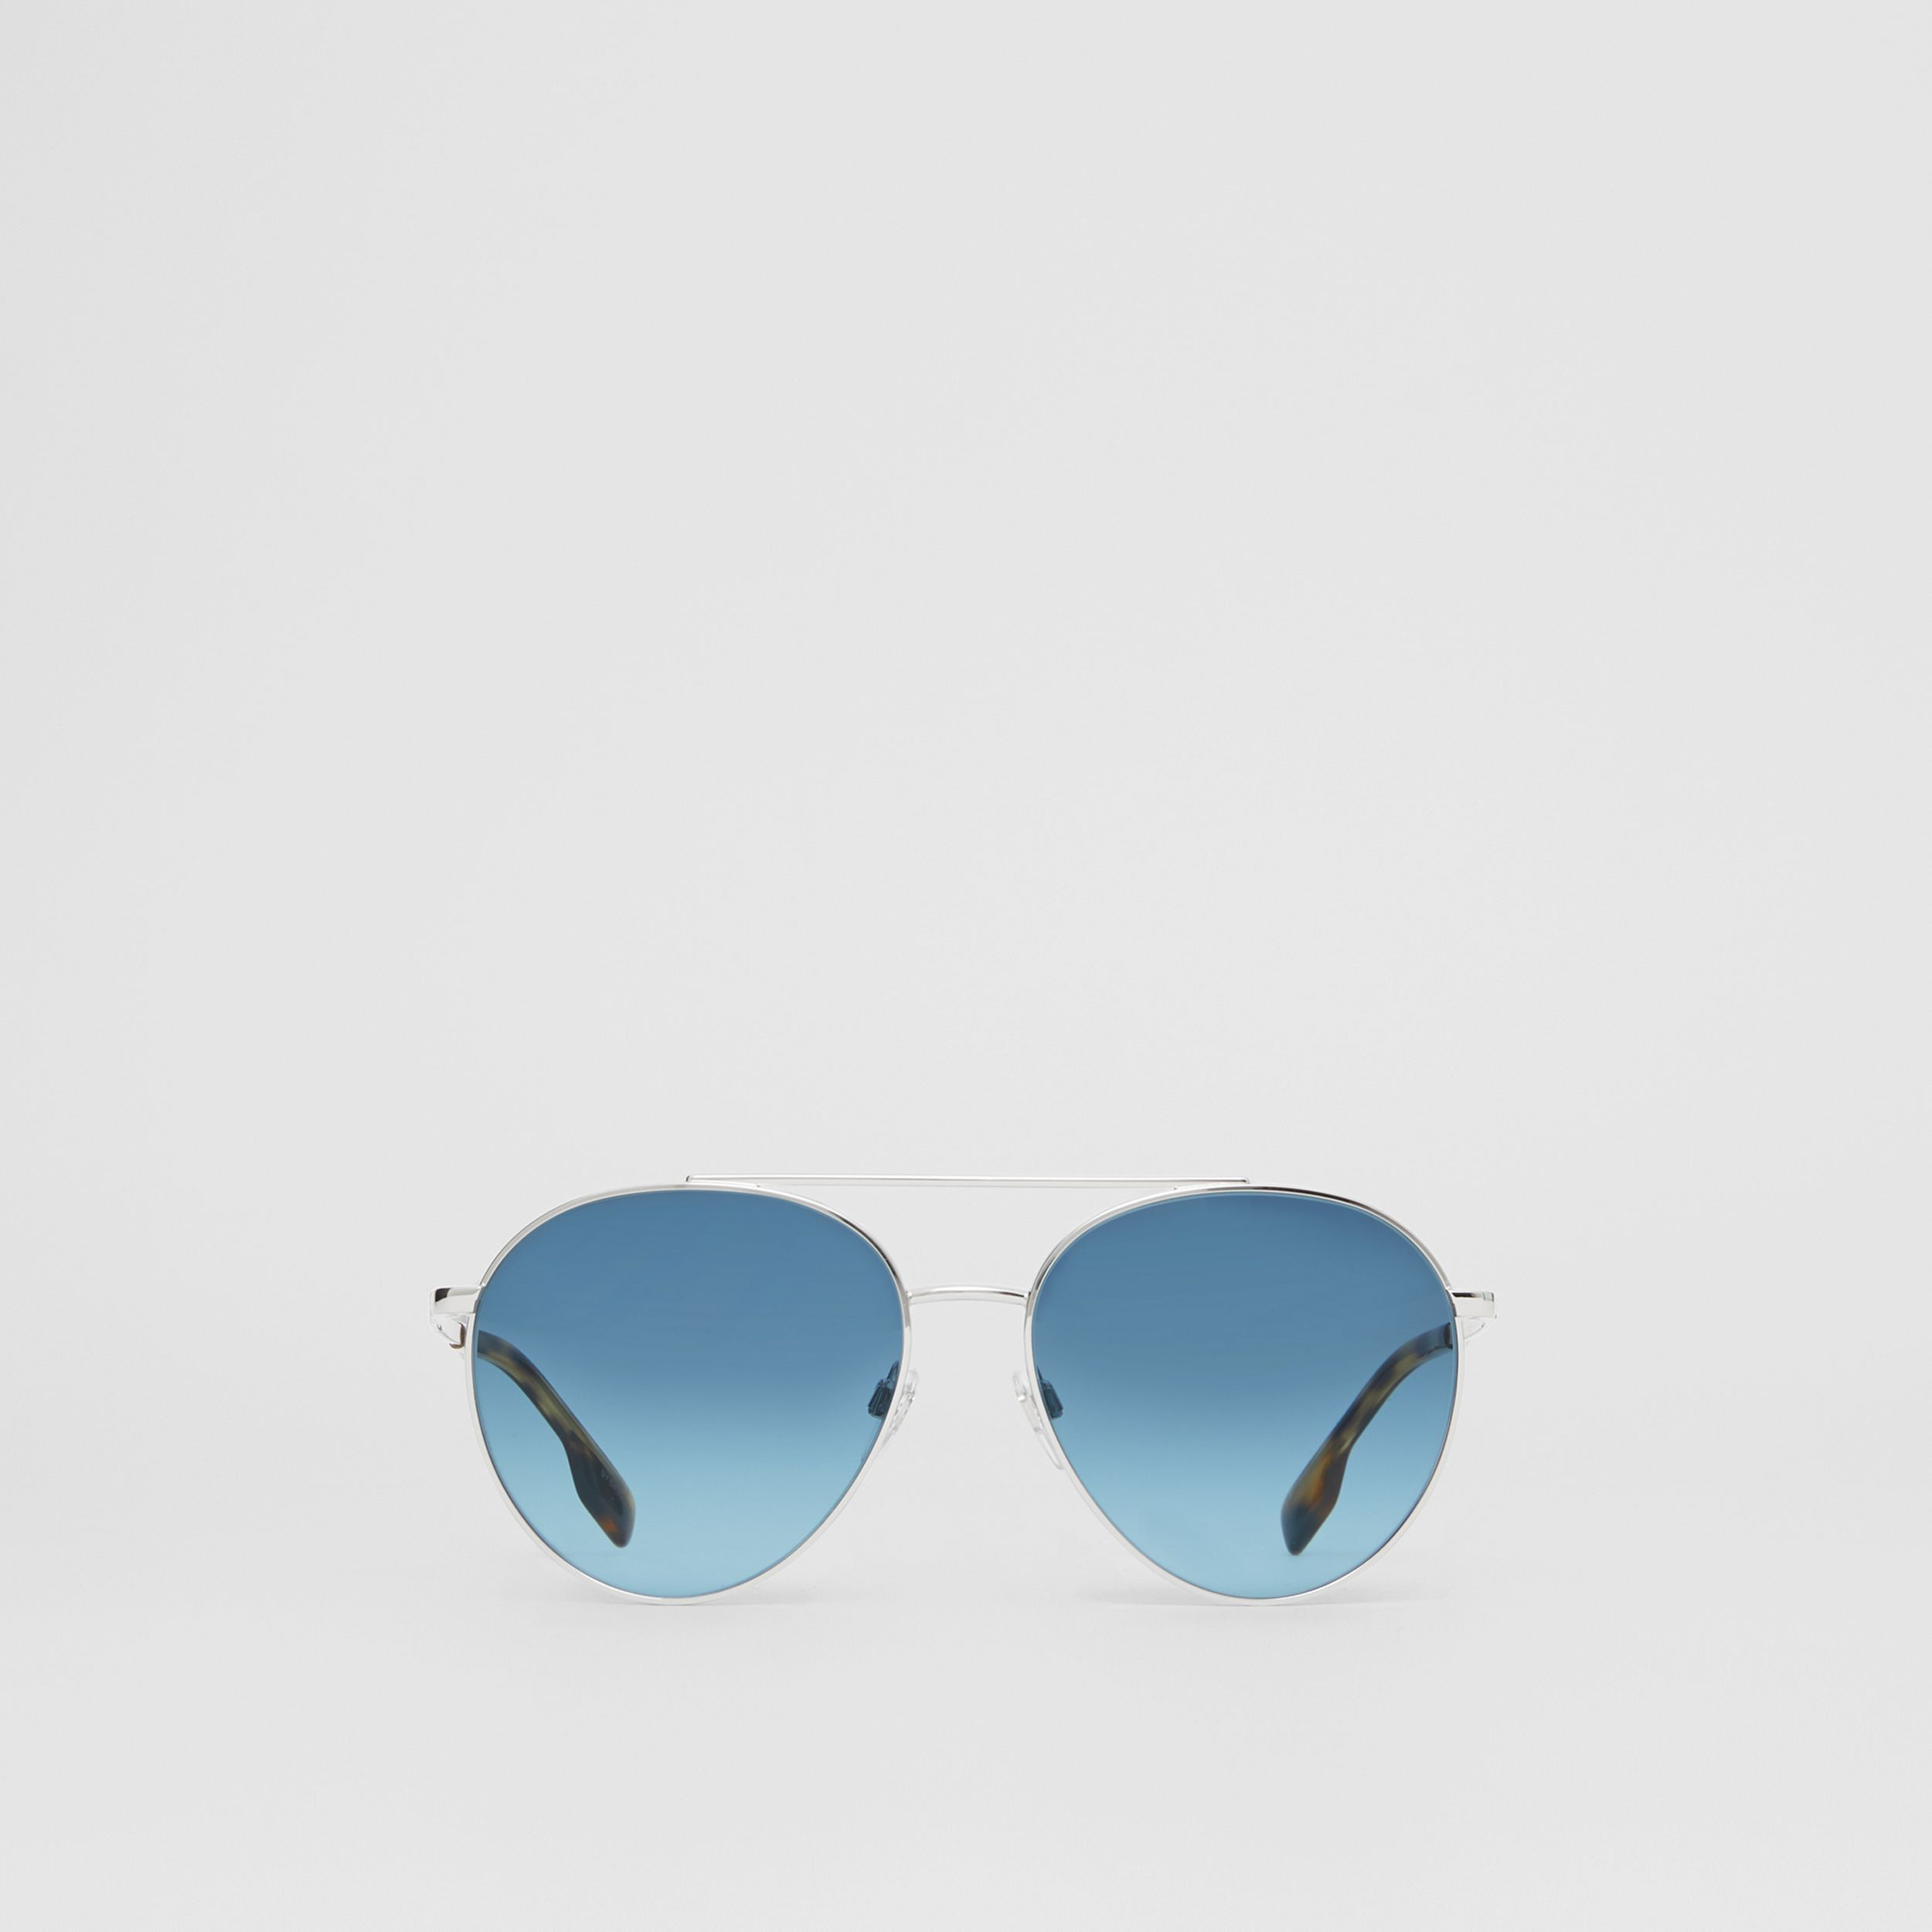 Pilot Sunglasses in Pale Blue - Women | Burberry United States - 1